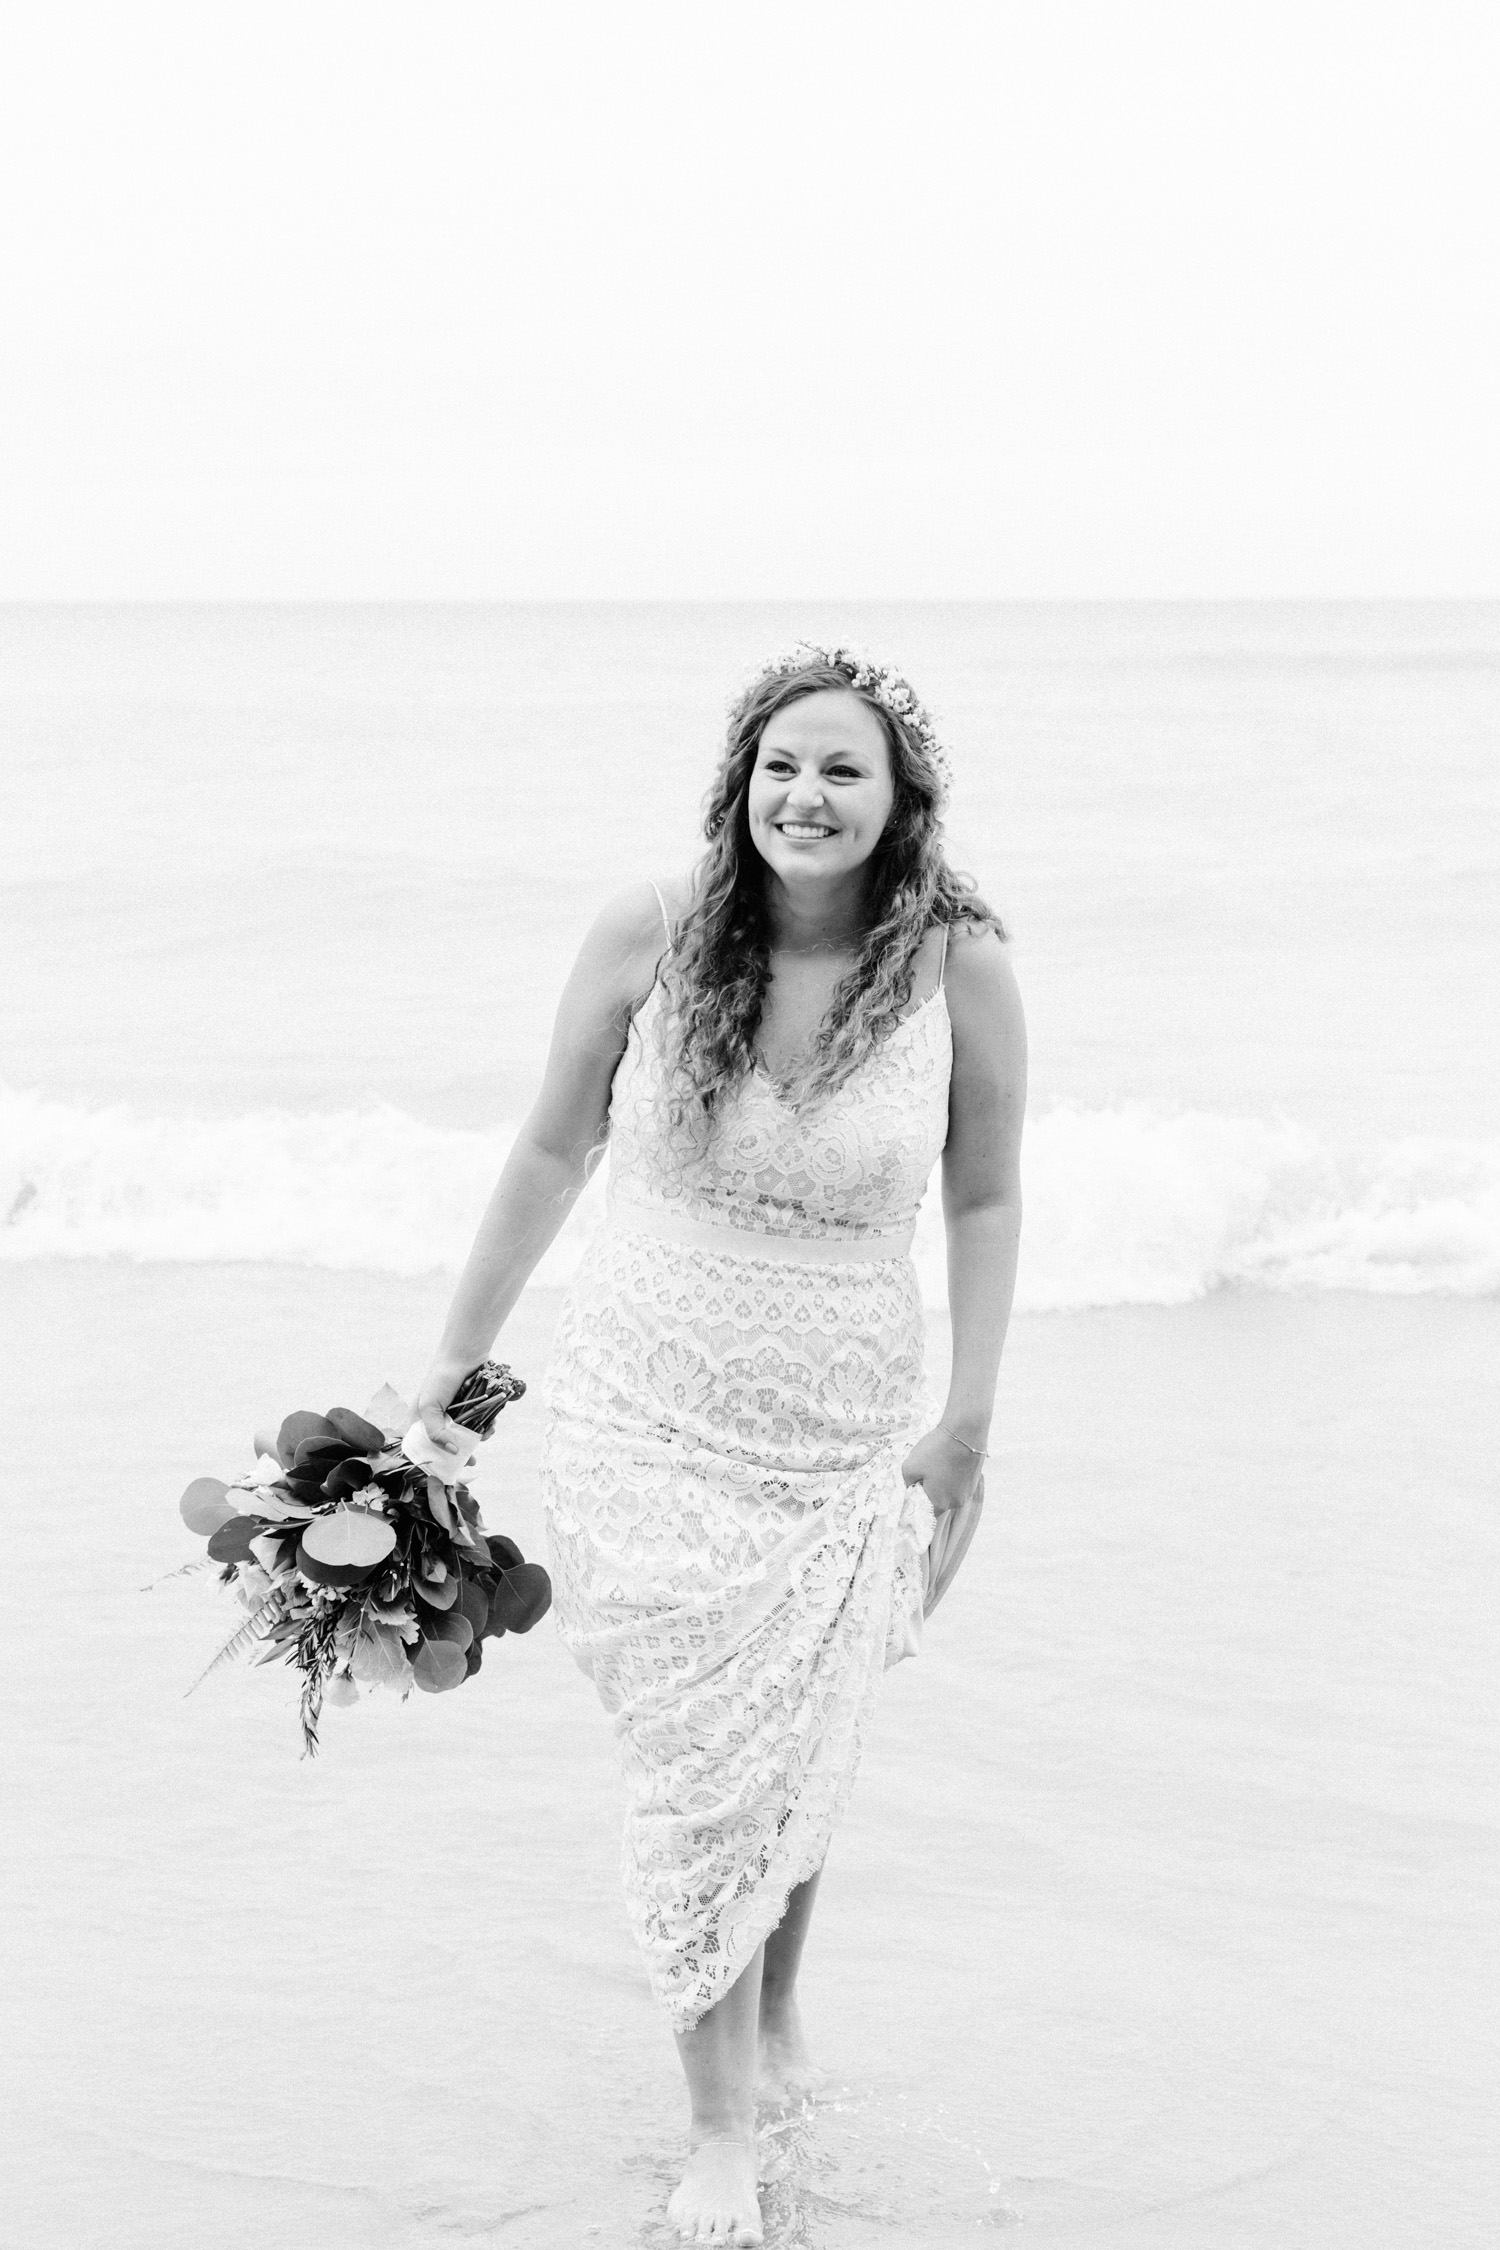 A boho bride in a relaxed lace BHLDN wedding dress laughs as she wets her feet in Lake Michigan